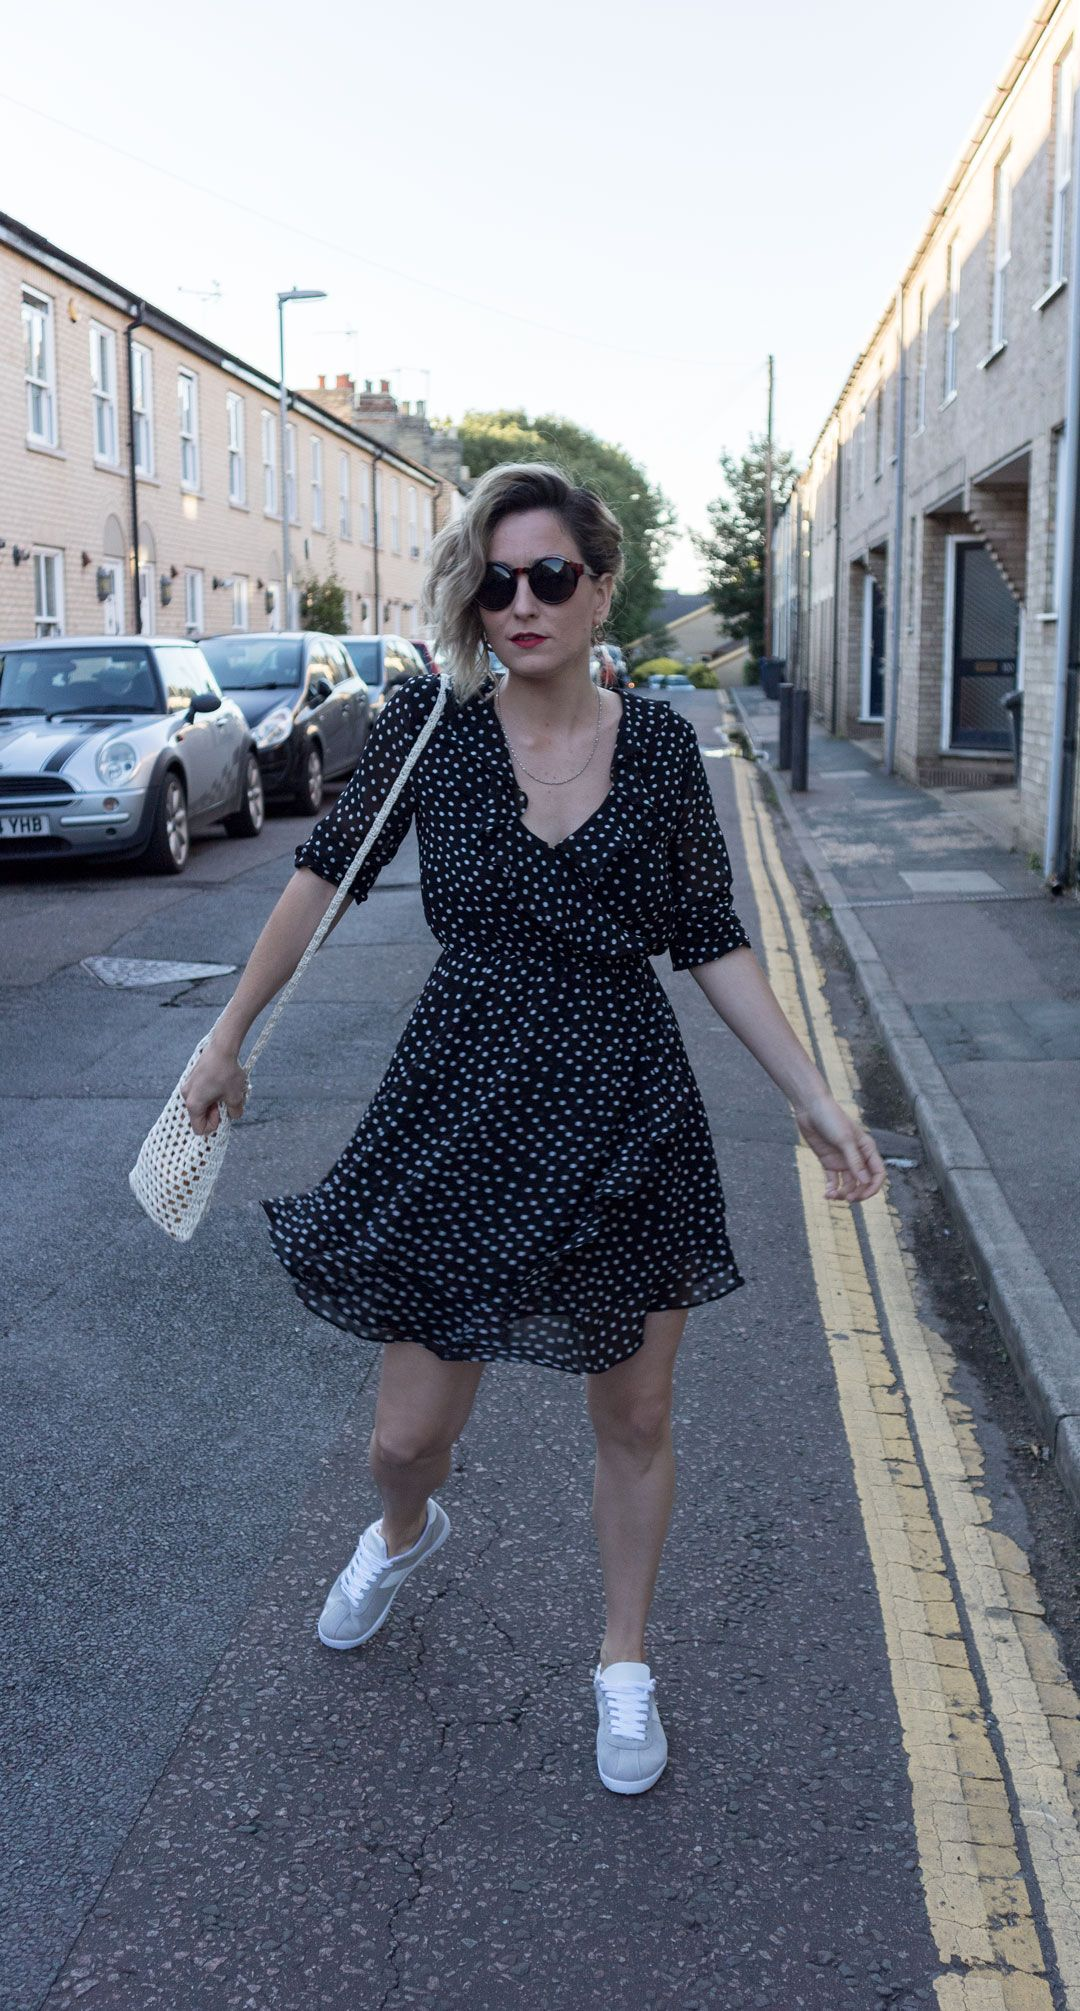 Romantic dress with a twist | Casual Tea Dress Styling | The polka dot dress you have seen all over Instagram this summer | Realisation par dupe | Polka dot wrap dress | Chiffon dress | Crochet bag | Chic outfit with a twist | Effortless chic | How to dress down a tea dress | Summer outfit inspiration | Cambridge Fashion | Saida Antolin | UK blogger | She talks Glam | The day that casual became chic | Wear it with sneakers | Easy summer outfit | Zara | H&M | ASOS | Black polka dot dress | Women with style | OOTD | Tomboy chic | Fall outfit | How to wear a tea dress | Gazelle sneakers | Adidas | Primark | Positive Fashion | From day to night outfit | Tortoiseshell sunglasses | How to dress up your sneakers